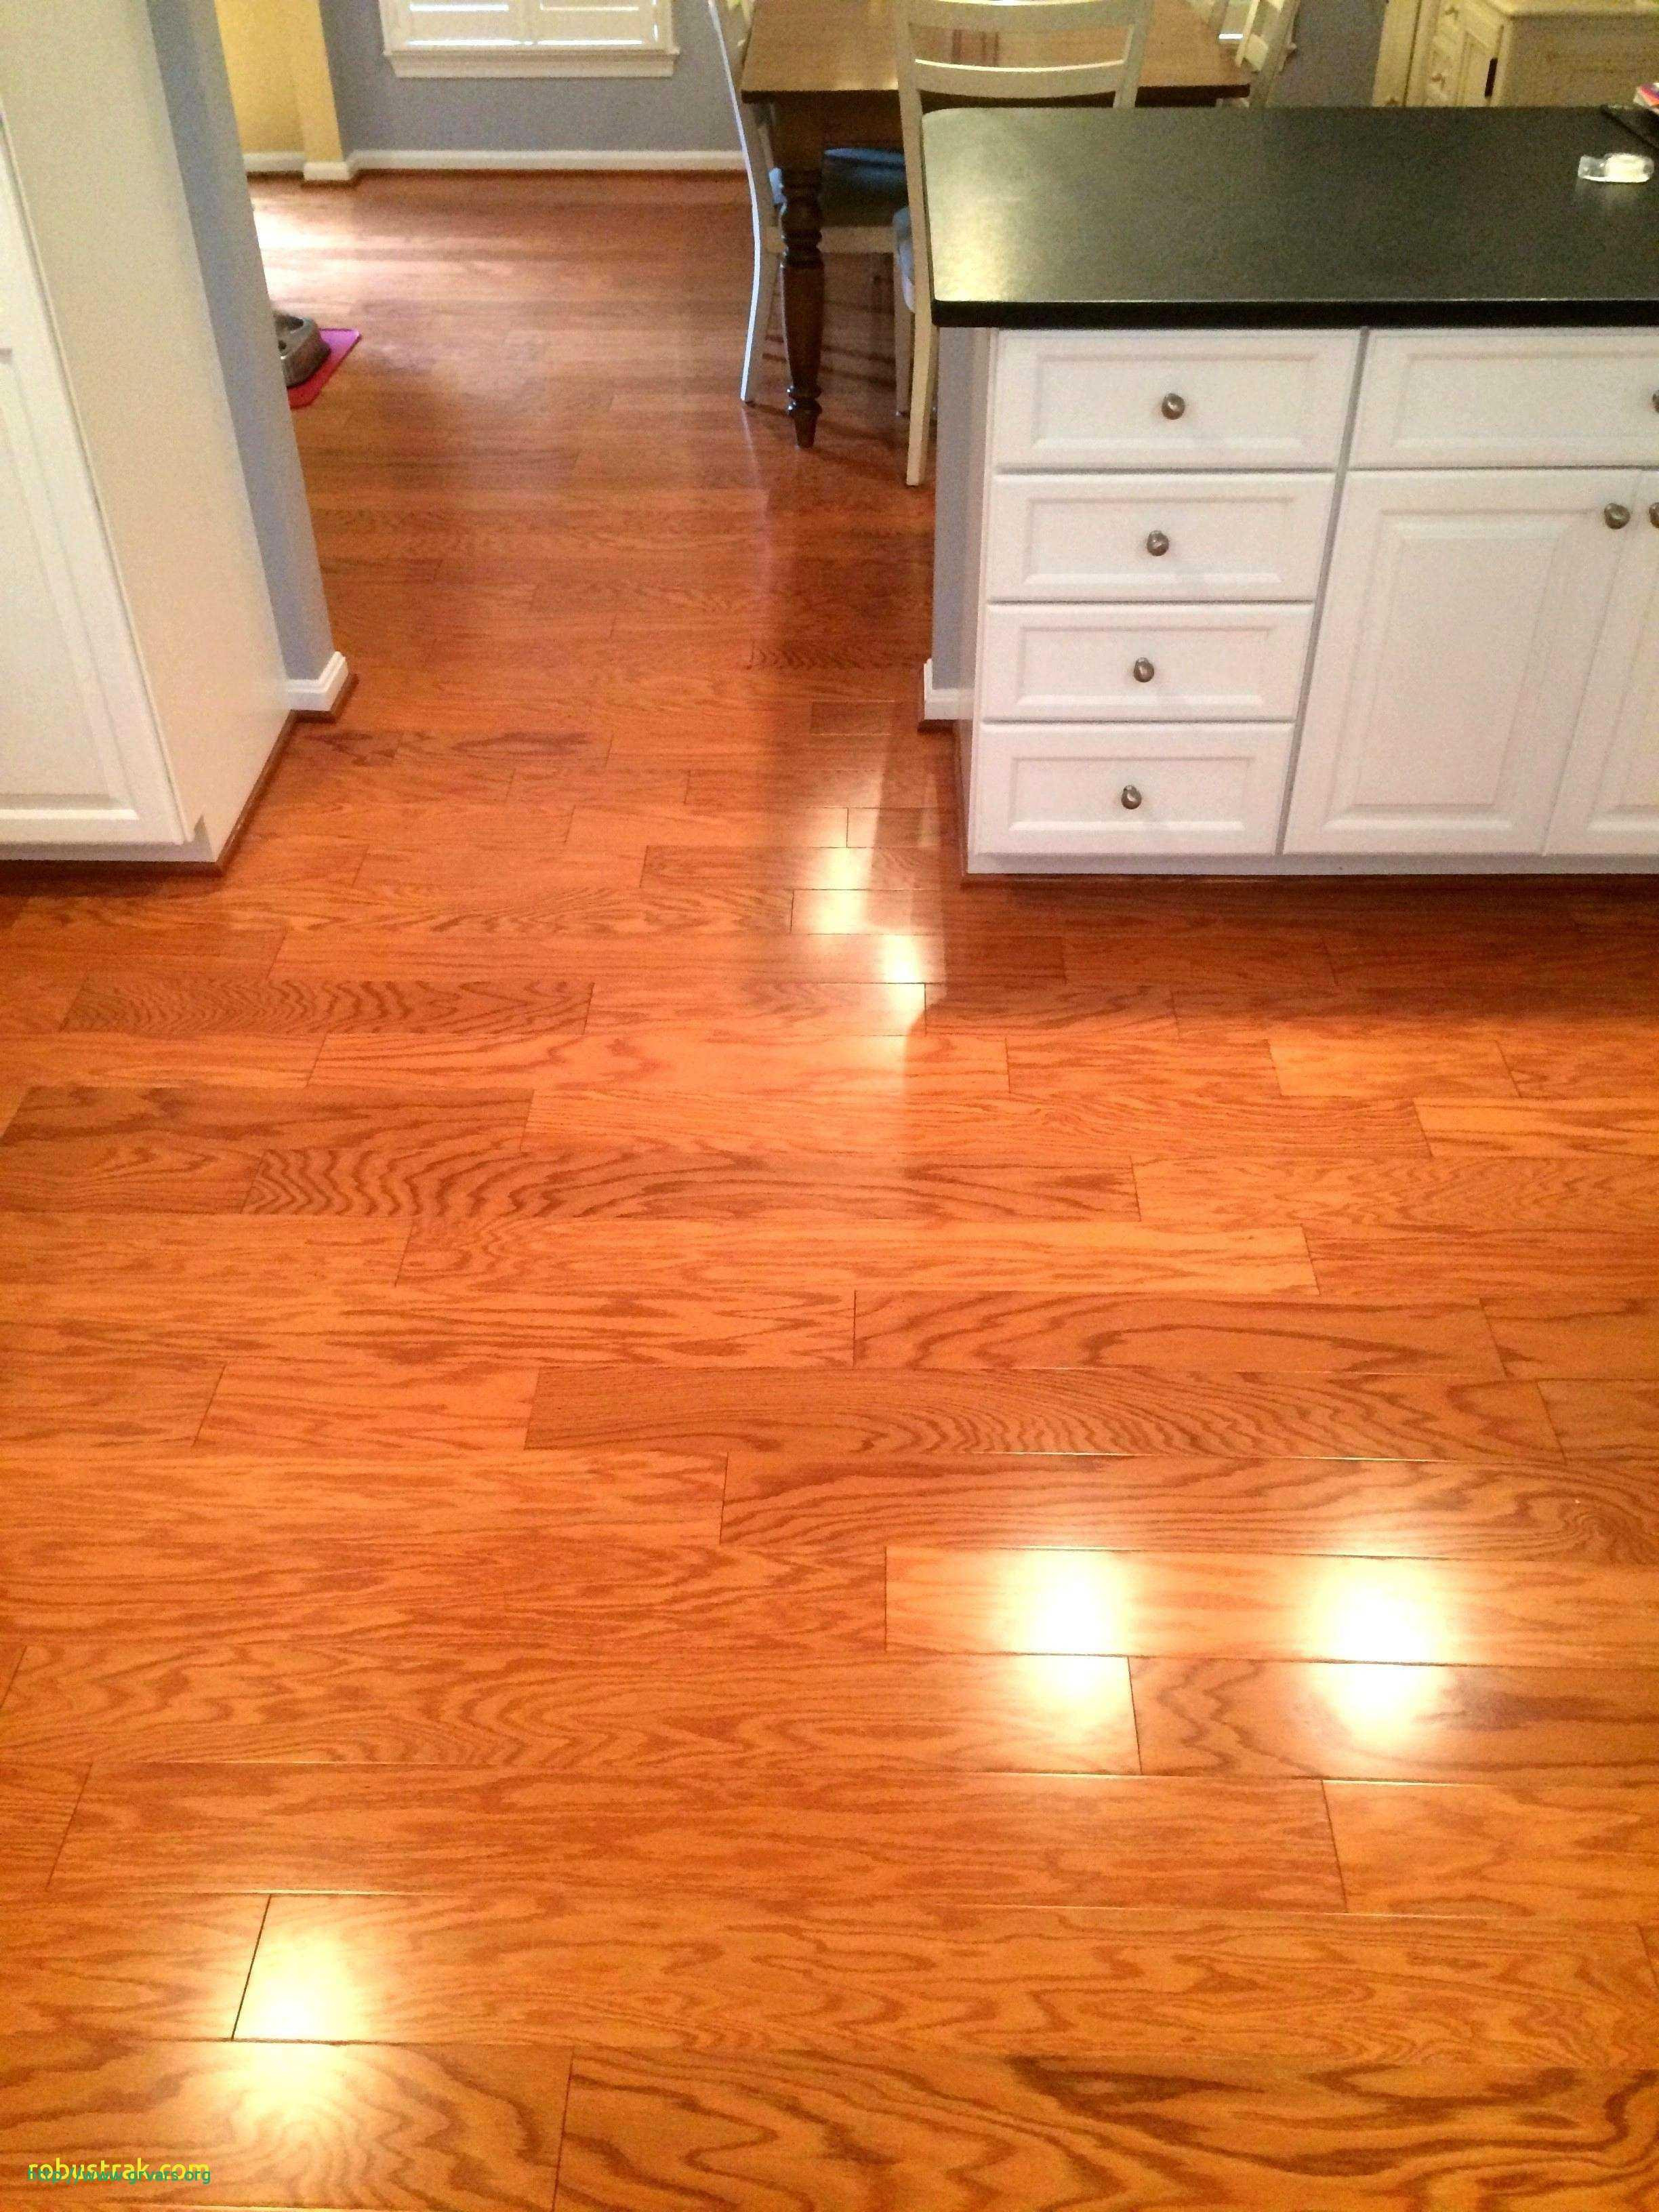 Refinishing Hardwood Floors without Sanding Of Diy Wood Floor Refinishing Awesome No Sanding Non toxic Wood Floor Regarding Diy Wood Floor Refinishing Lovely 25 Beau fore Wood Floors